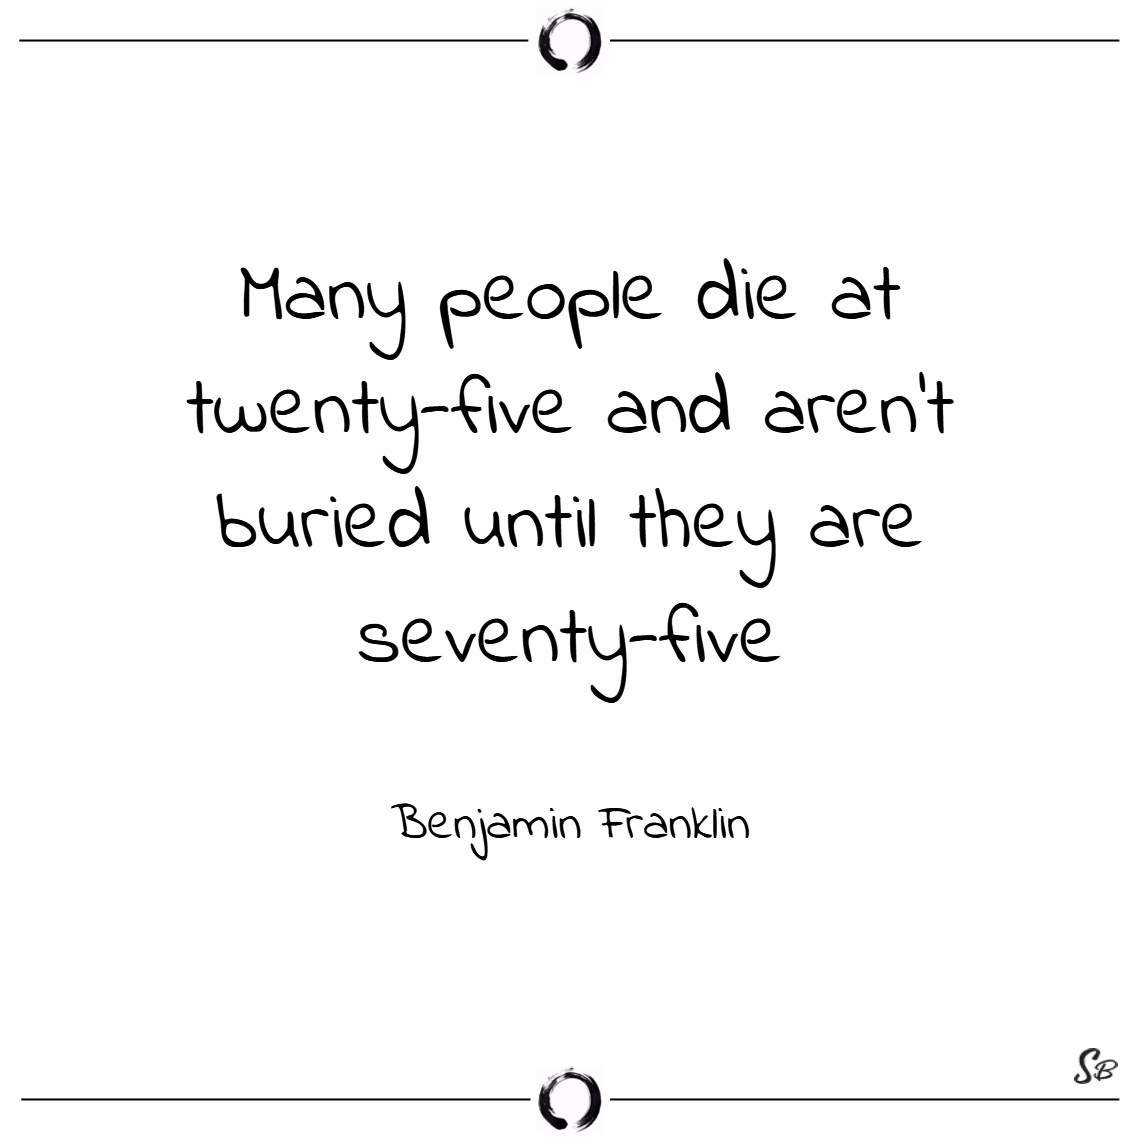 Many people die at twenty five and aren't buried until they are seventy five. – benjamin franklin